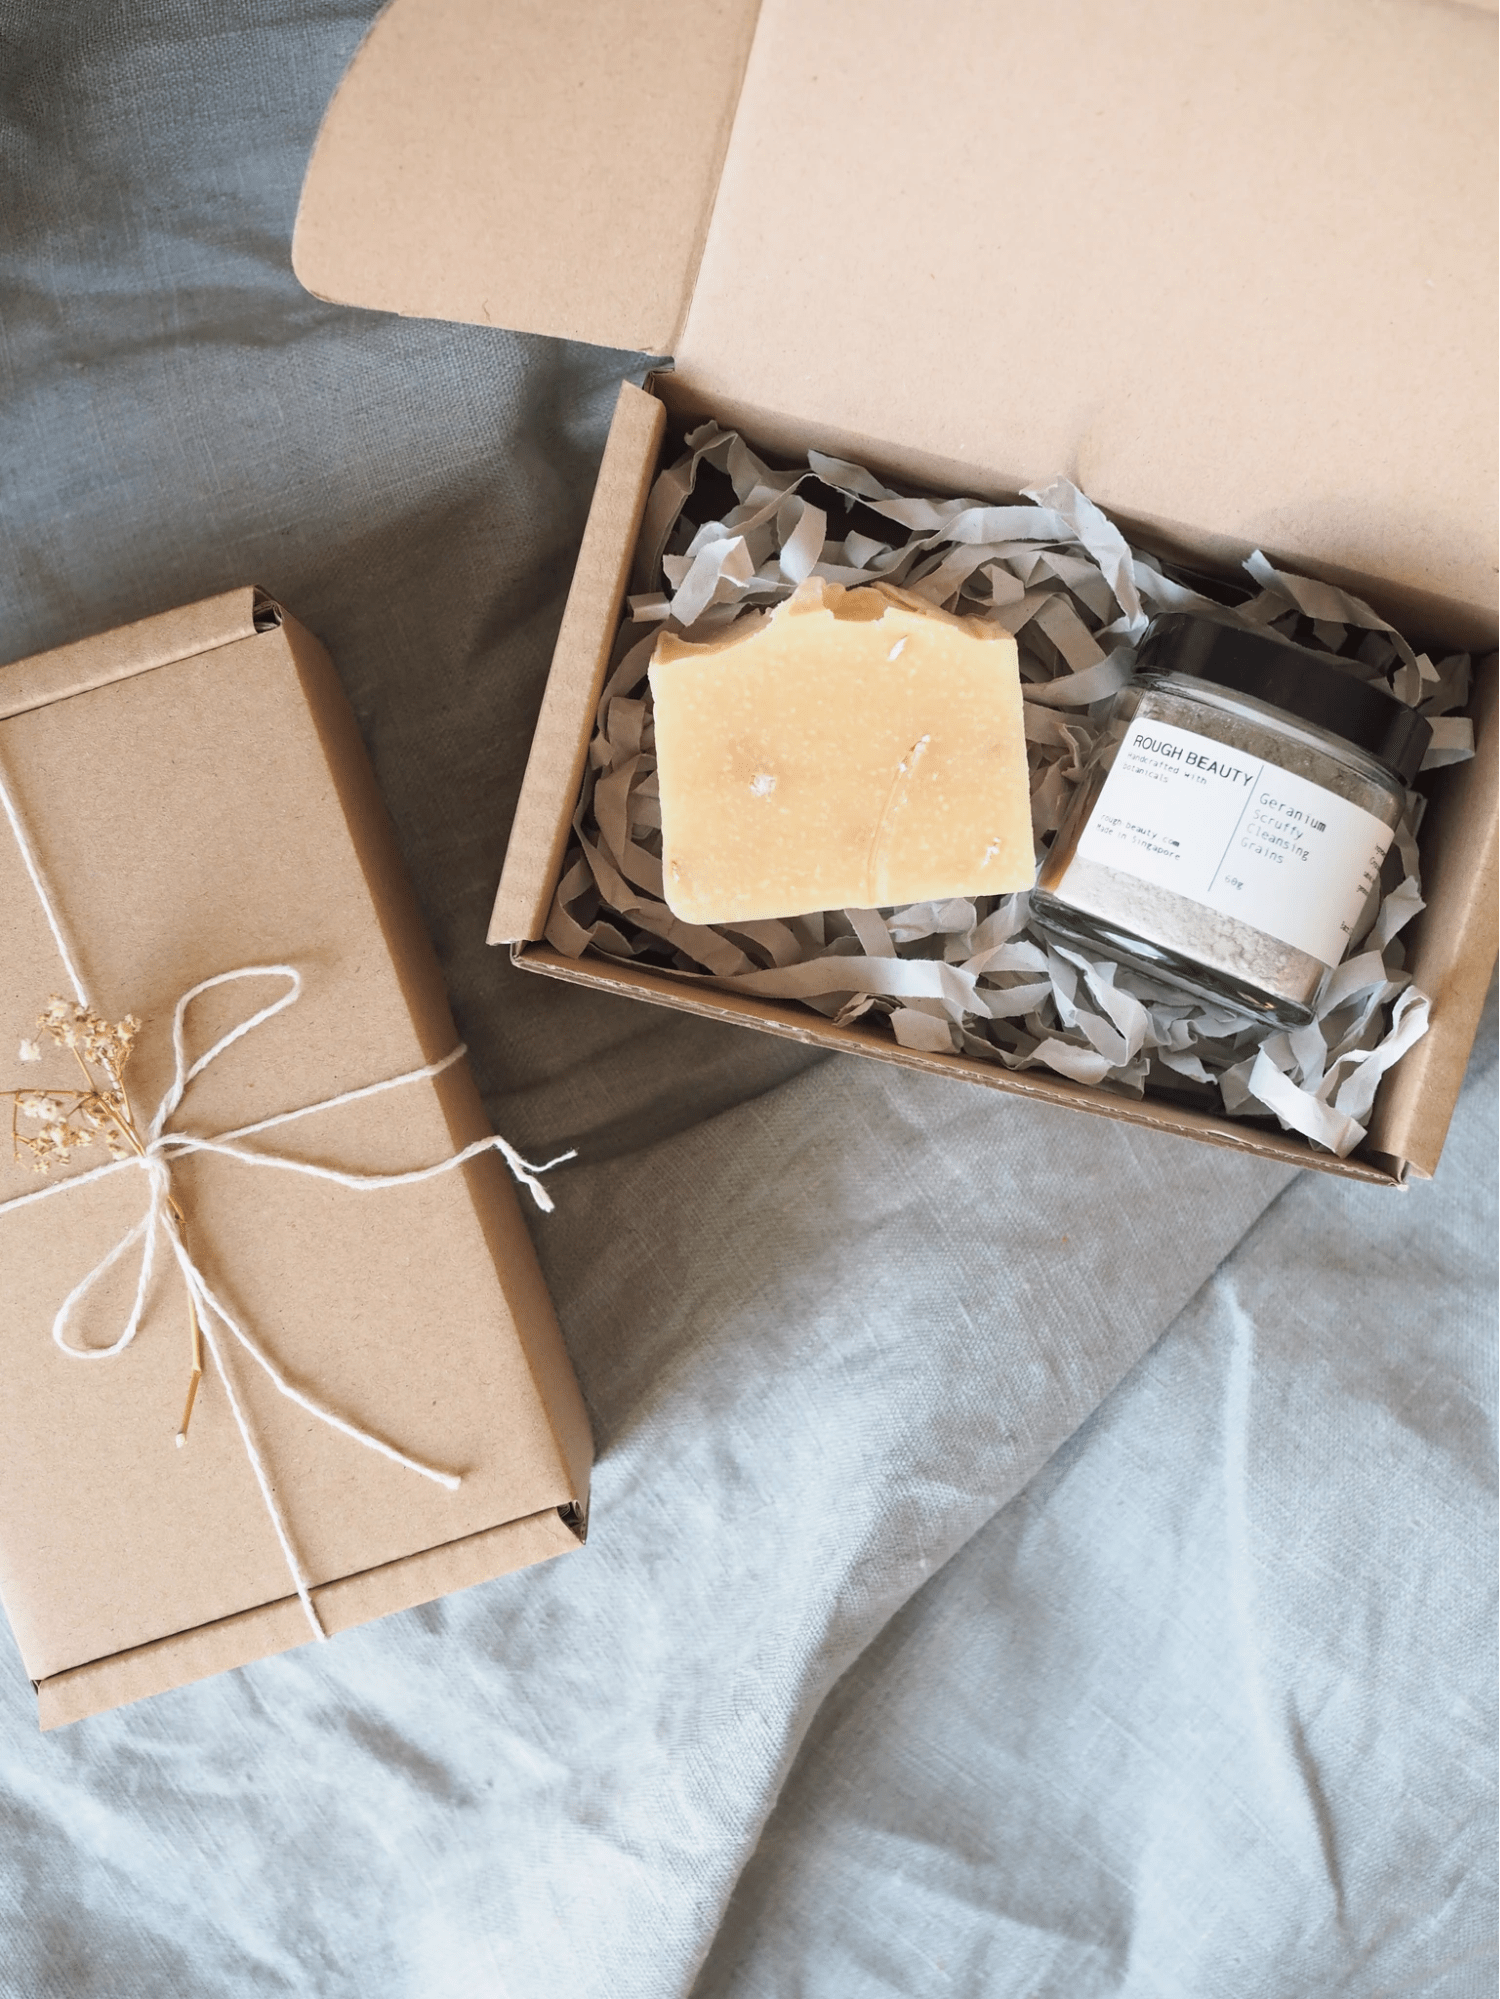 Handcrafted soap bar from Rough Beauty